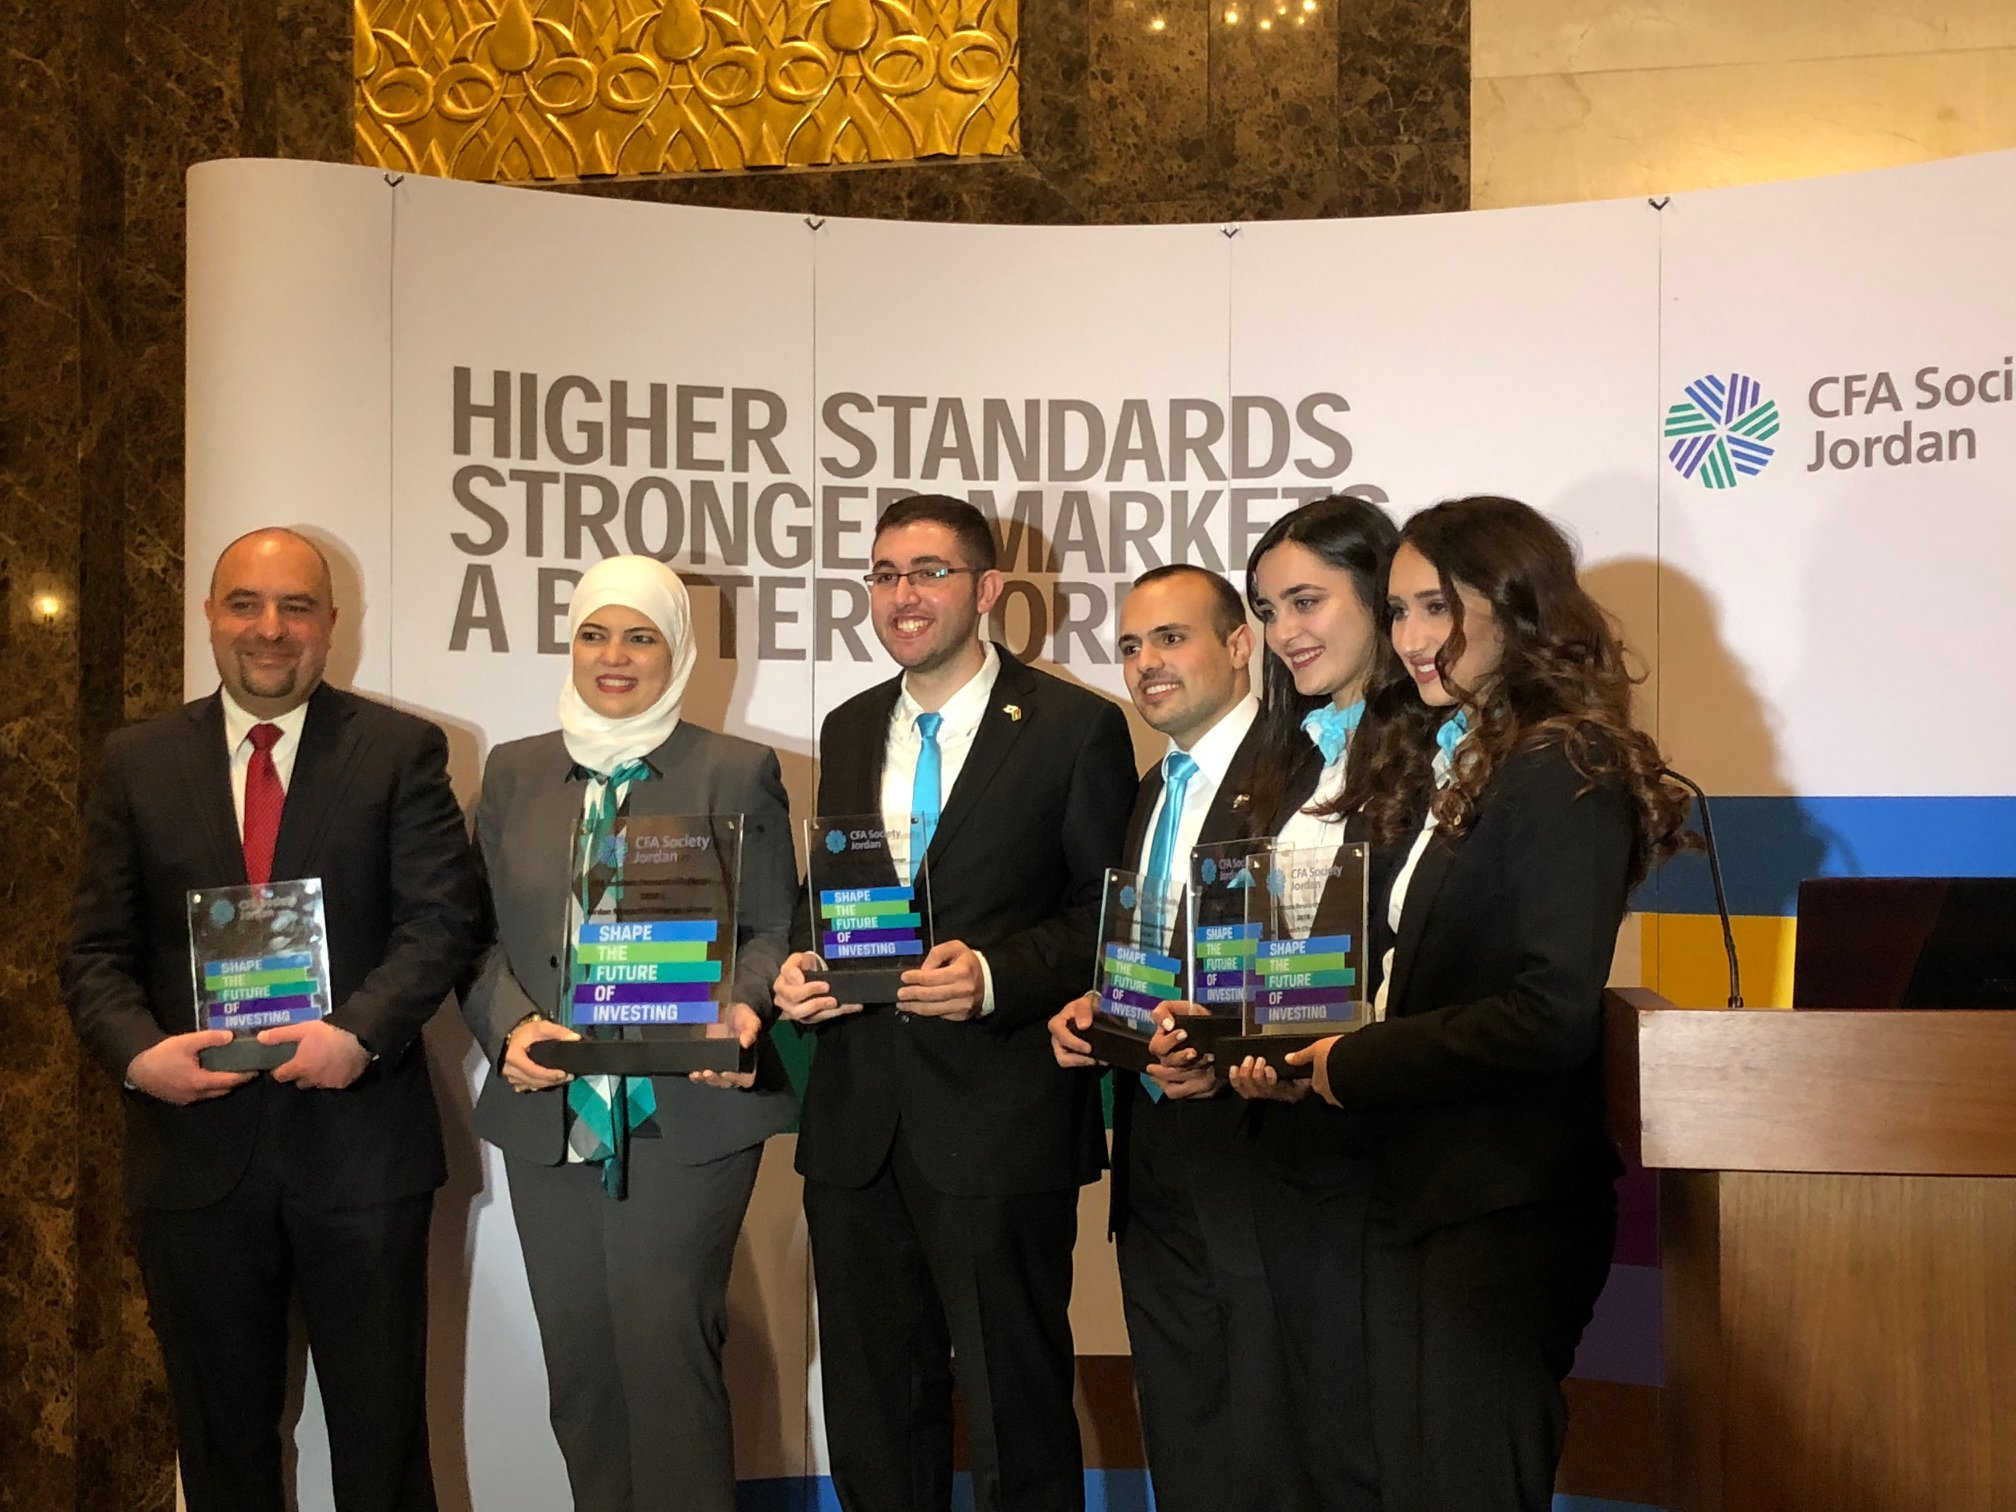 CFA Research challenge 2018 - CFA Society Jordan announced the winner of the CFA Institute Research Challenge at an event held recently at the Four Seasons Hotel in Amman. Princess Sumaya University for Technology came in first place and will represent Jordan at the EMEA Regional Competition in Dublin, Ireland in April. University of Jordan was named as the runners-up and will represent Jordan at the Arab Societies Research Challenge Final in Dubai in March.